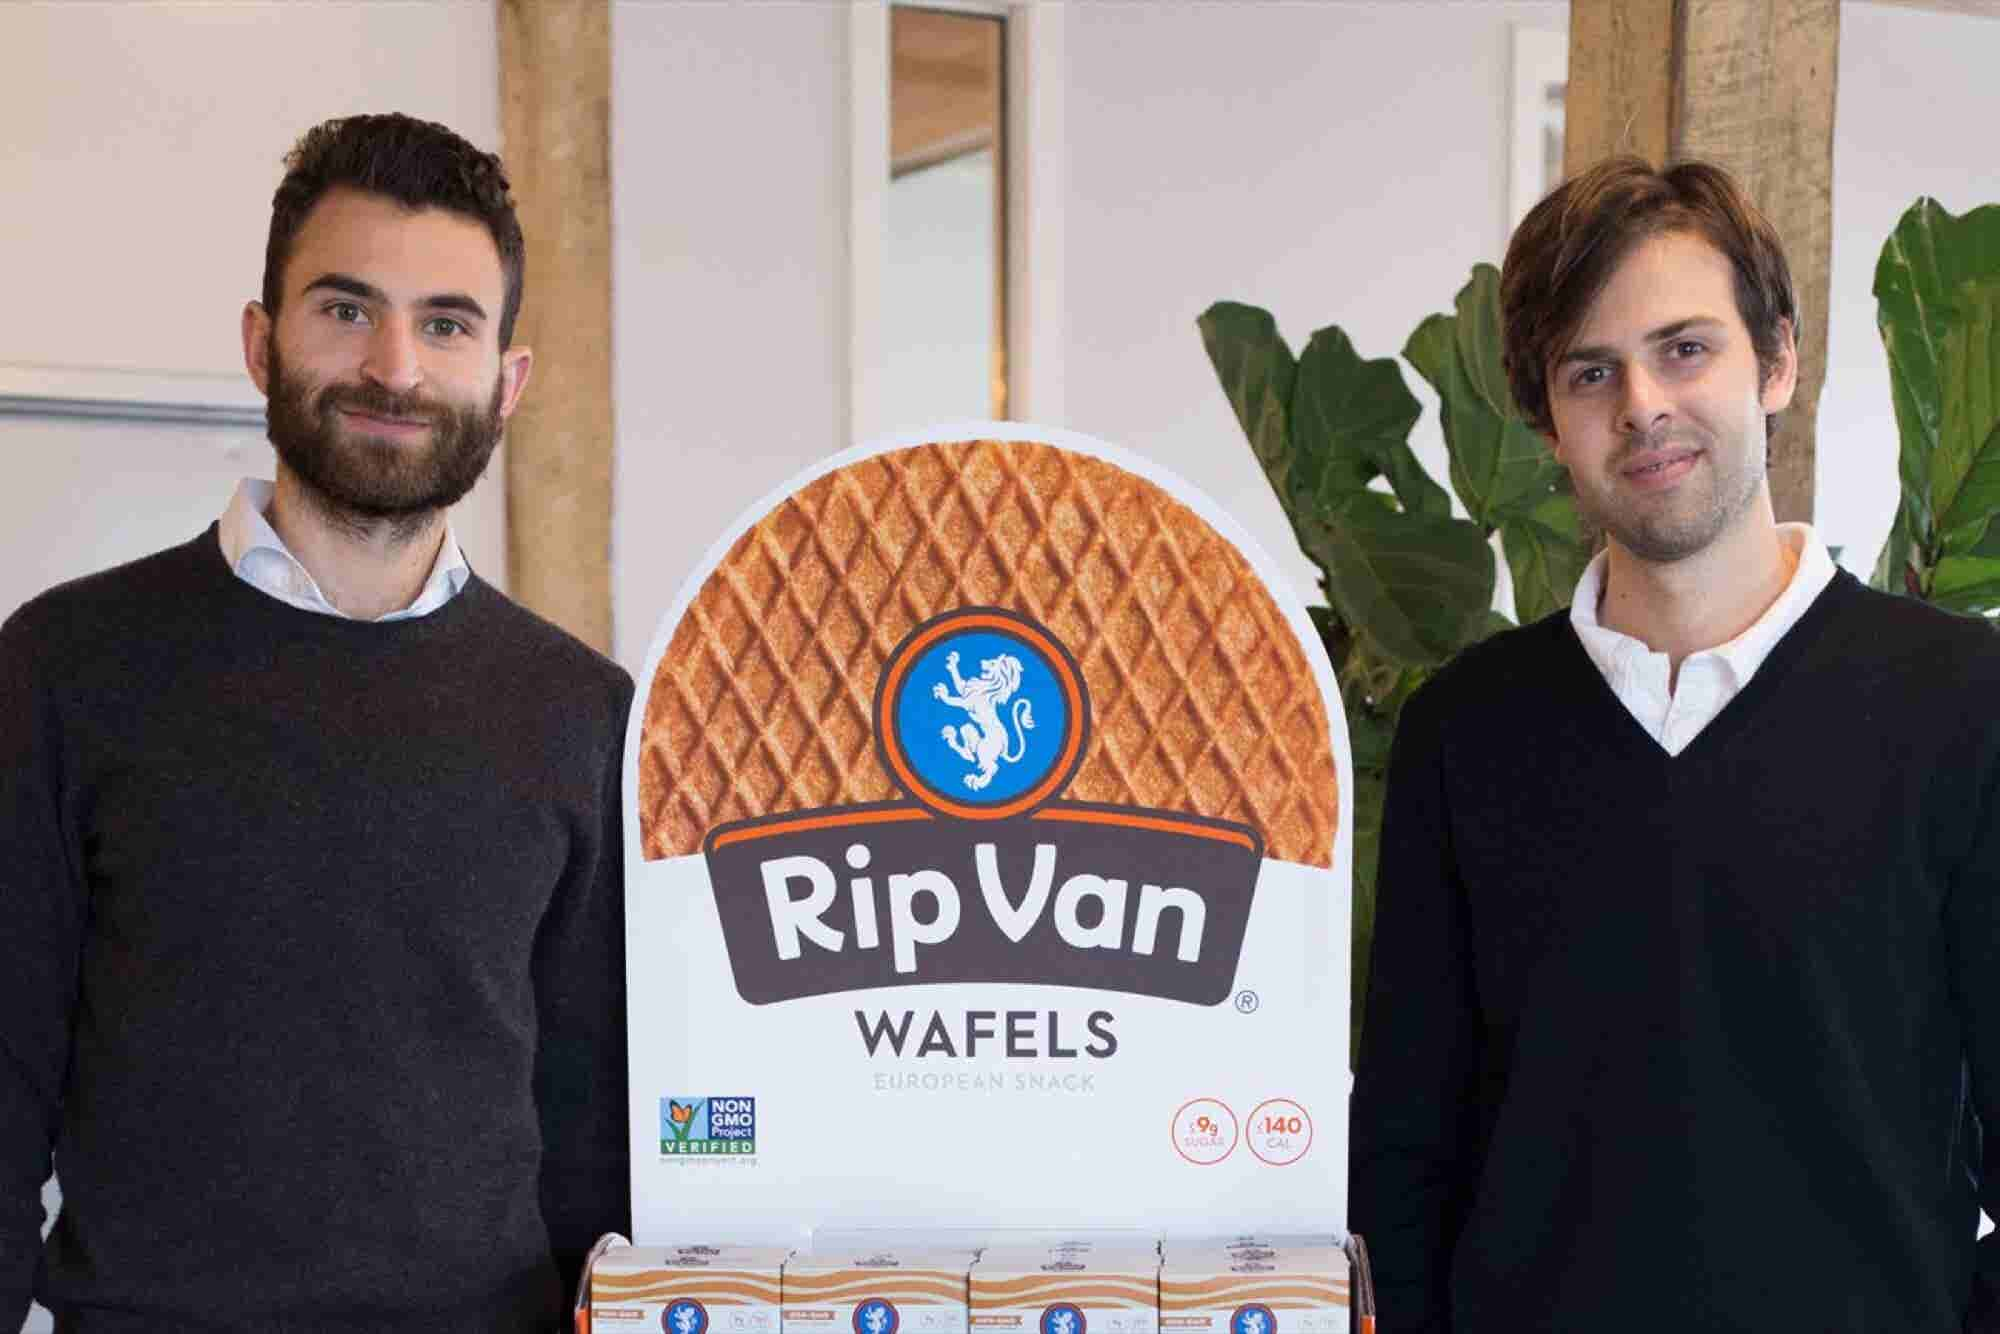 This Snack Company Grew Quickly Out of a Dorm Room After It Sold Its Products to Tech Companies